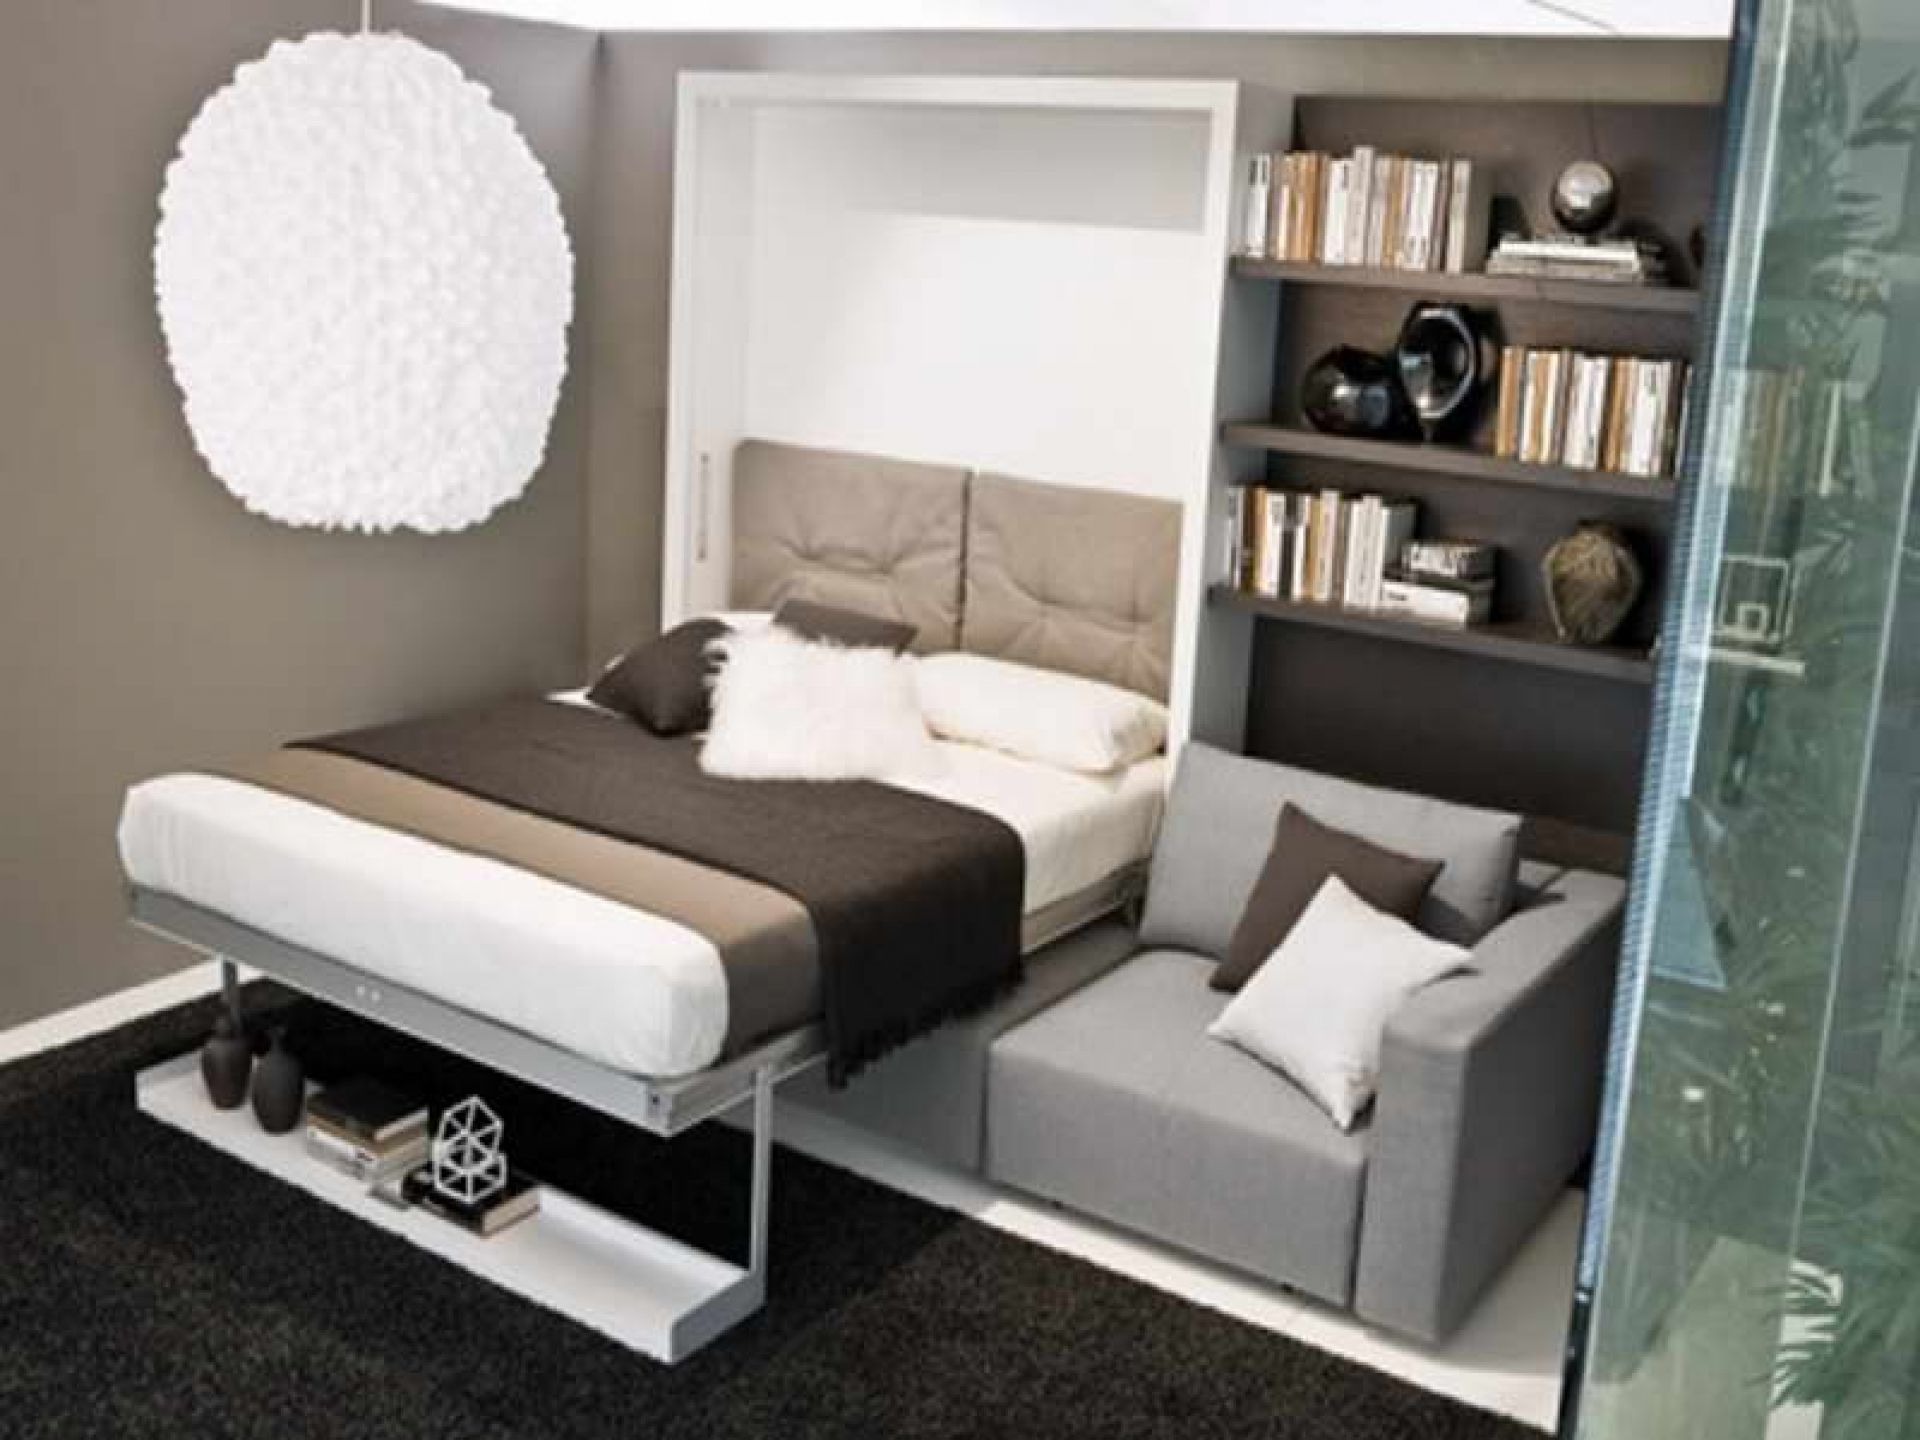 Charming Unique Design Murphy Bed Kits For Bedroom Interior